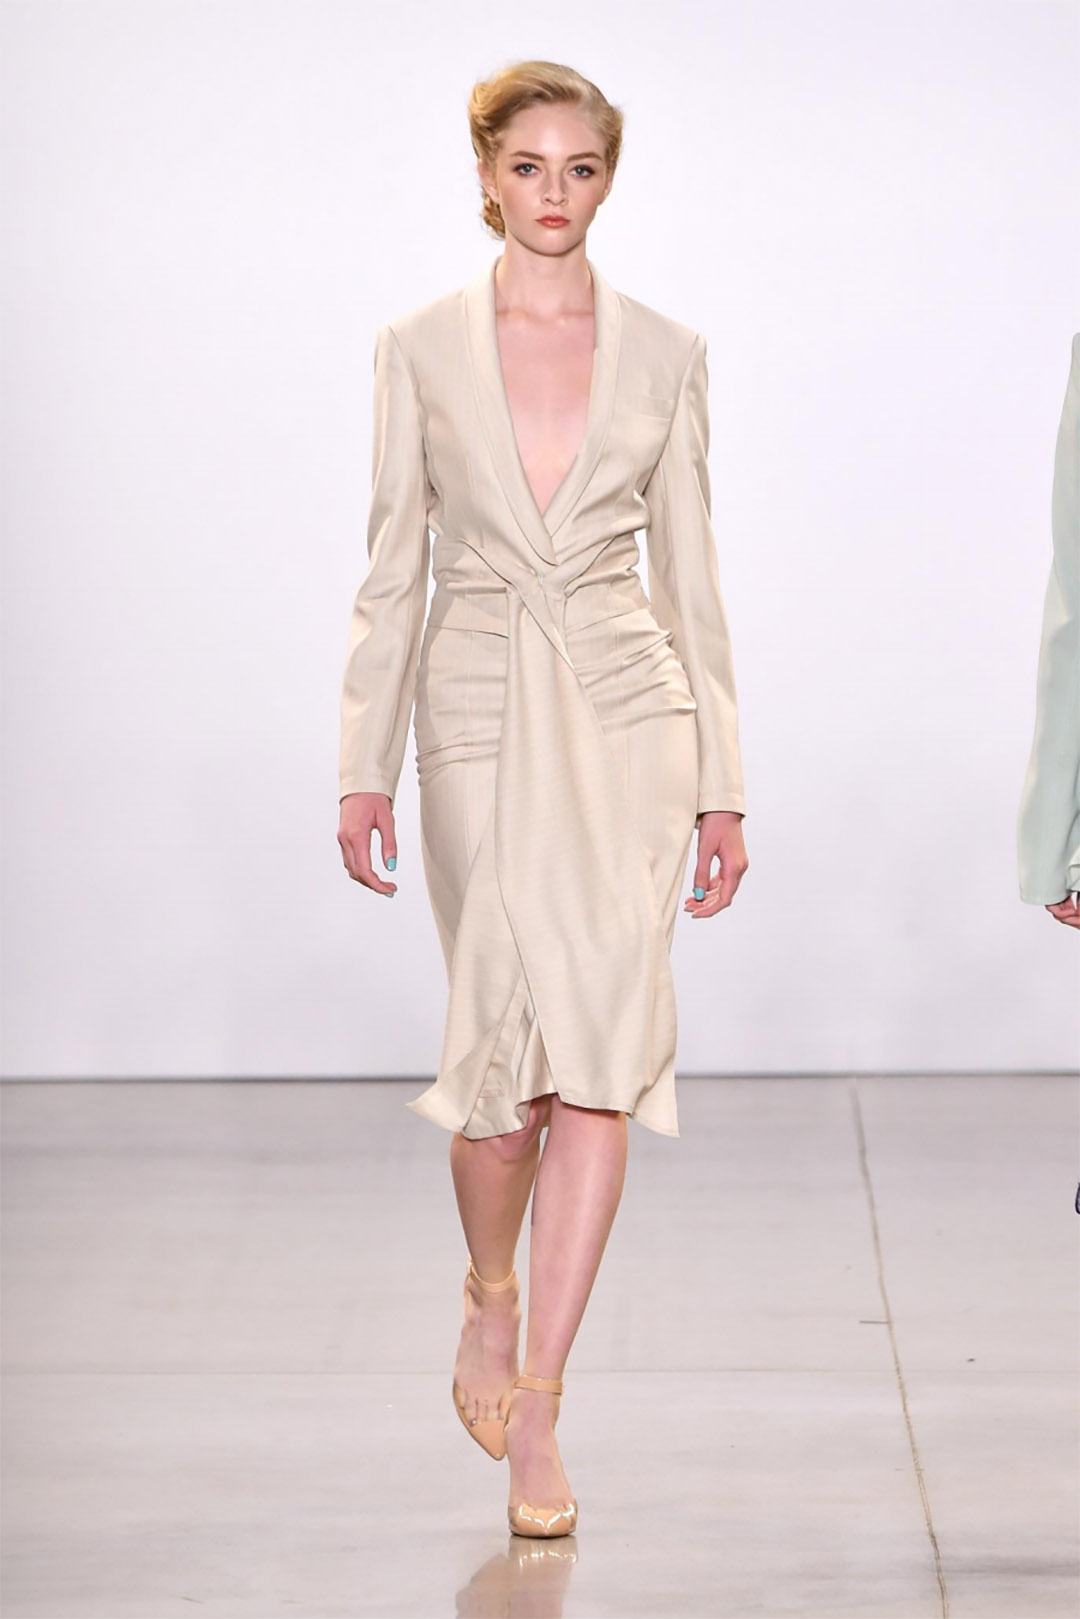 taoray wang new york fashion week spring 2020